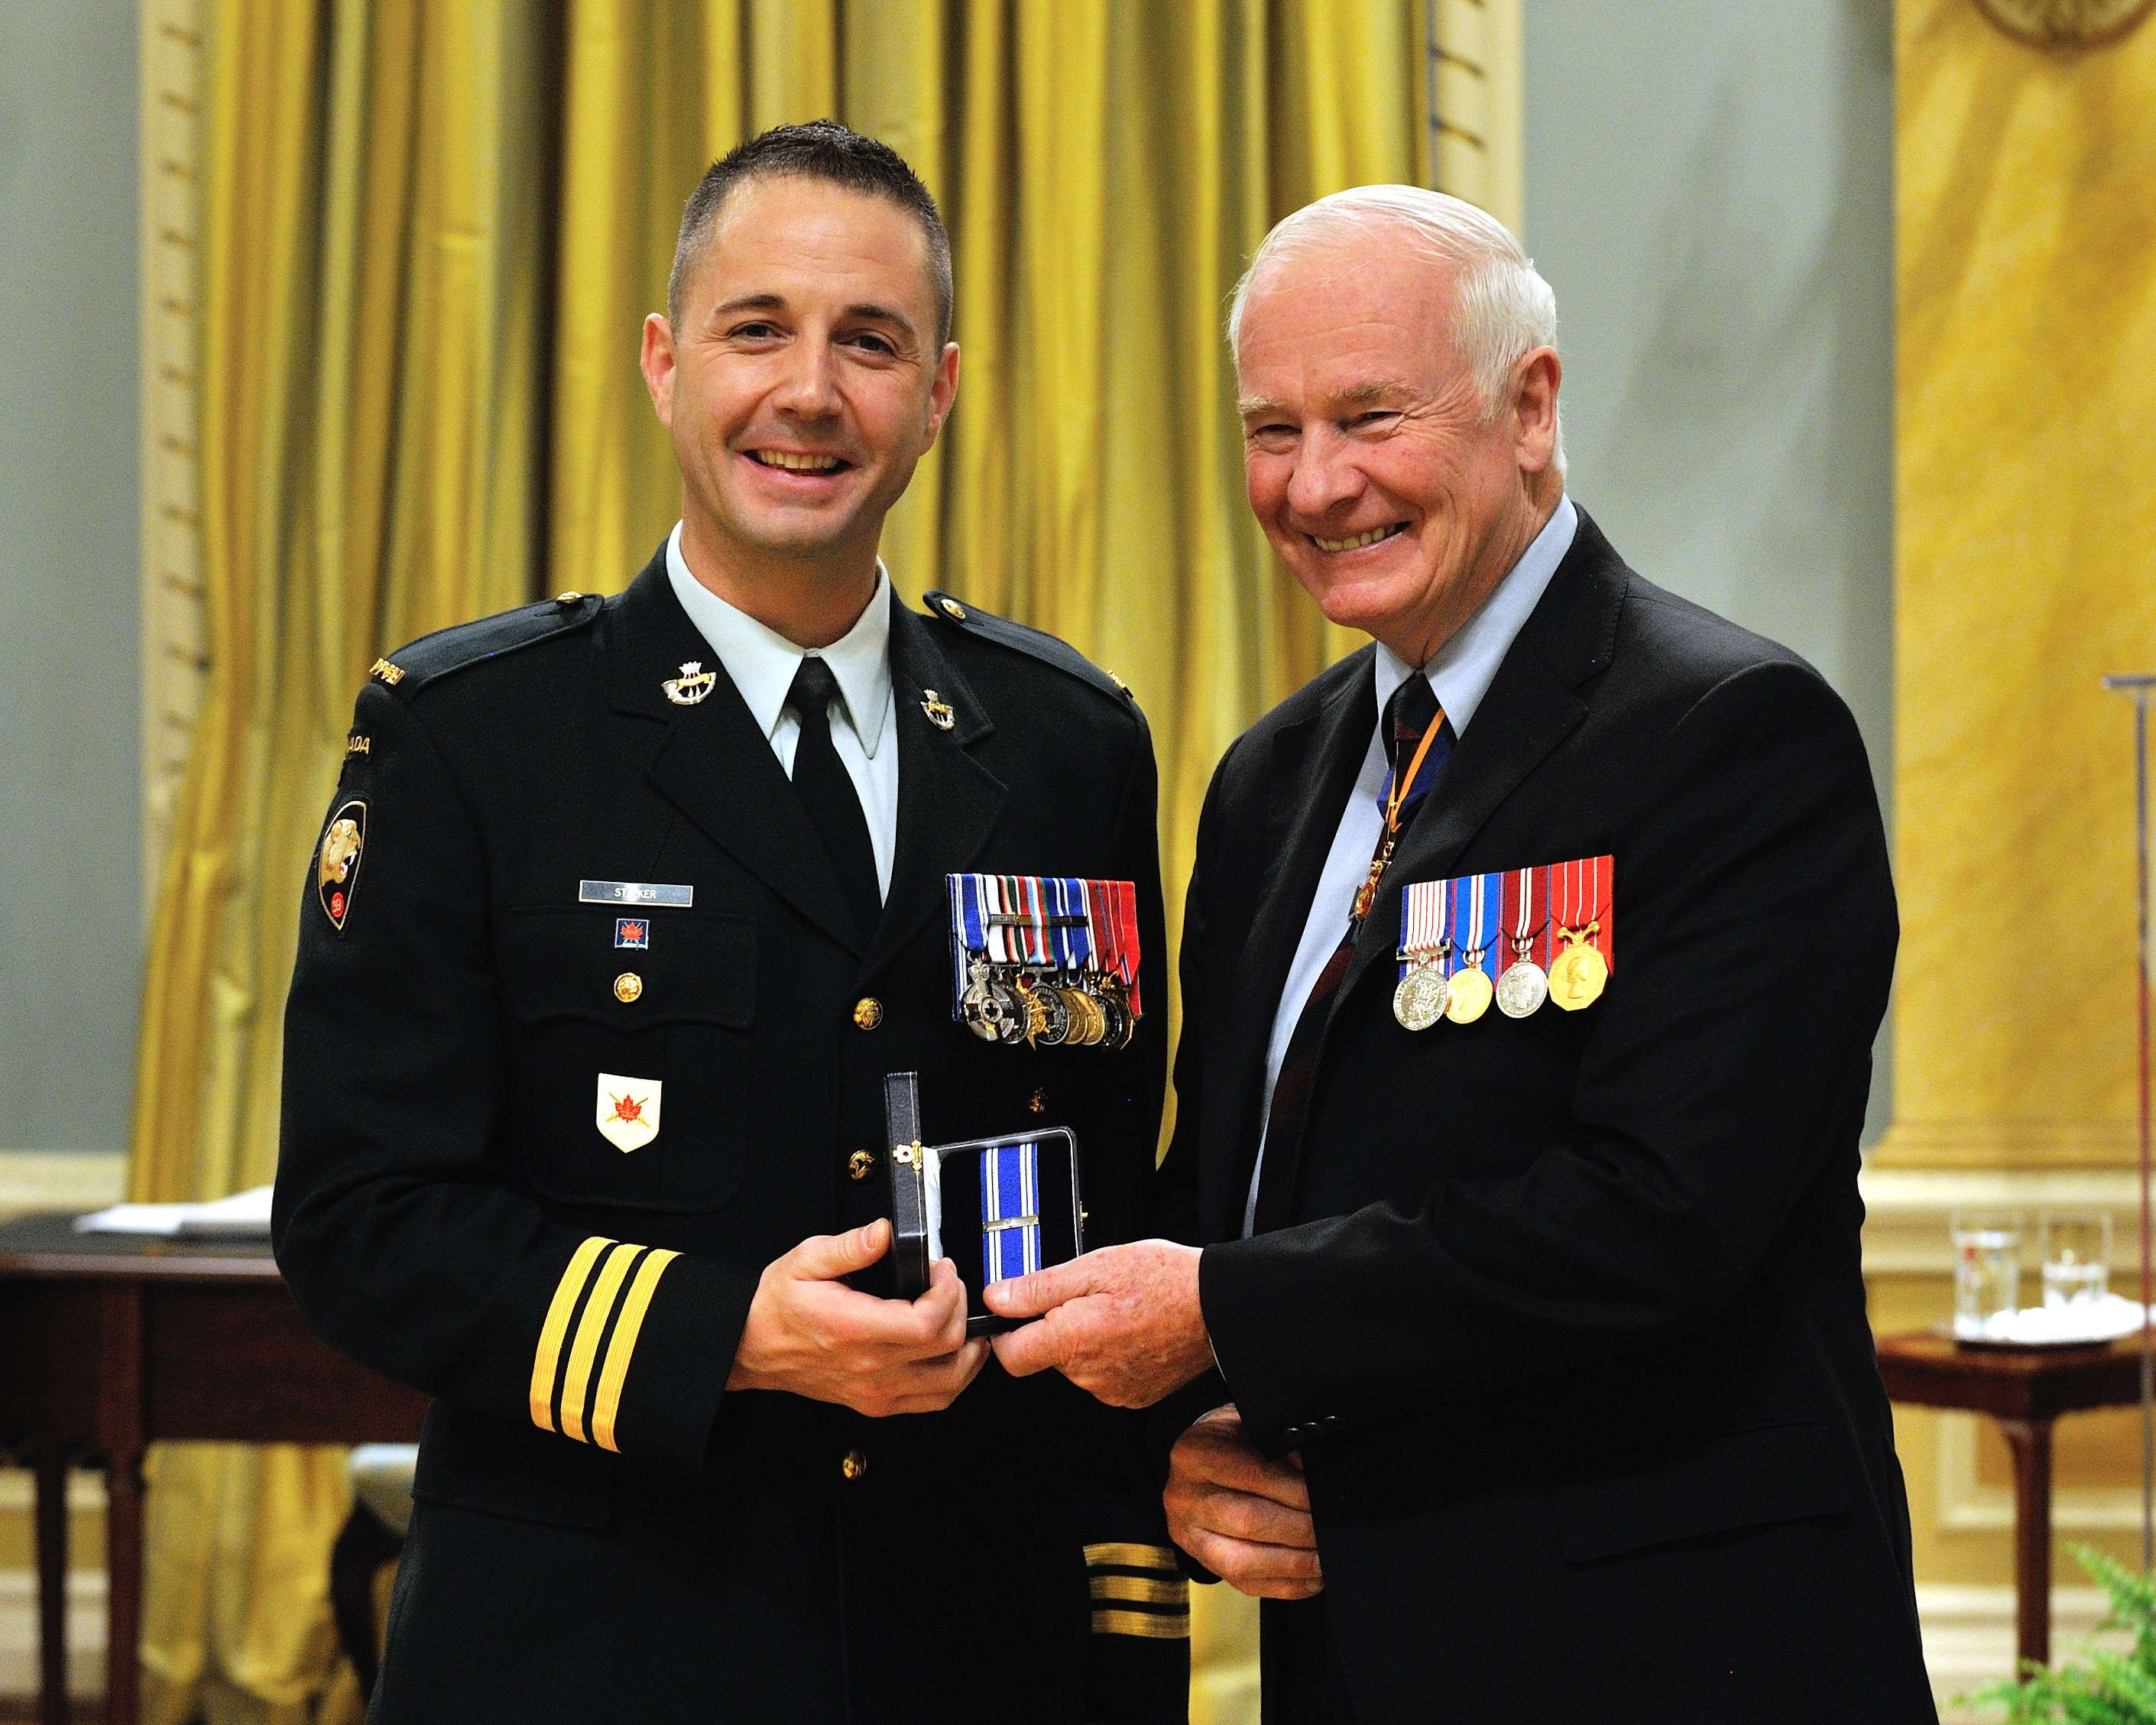 Lieutenant-Colonel Mason James Stalker, M.S.M., C.D., received the Meritorious Service Medal (Military Division). Lieutenant-Colonel Stalker displayed leadership and tactical acumen as the commanding officer of the Canadian contingent at Regional Command (South) Headquarters and as executive officer to the deputy commanding general from September 2010 to October 2011.  Responsible for operations in the most volatile and violent region of Afghanistan, he was instrumental to operational success and significantly contributed to defeating the insurgents.  Lieutenant-Colonel Stalker's performance was of a high standard and brought honour to the Canadian Forces and to Canada.